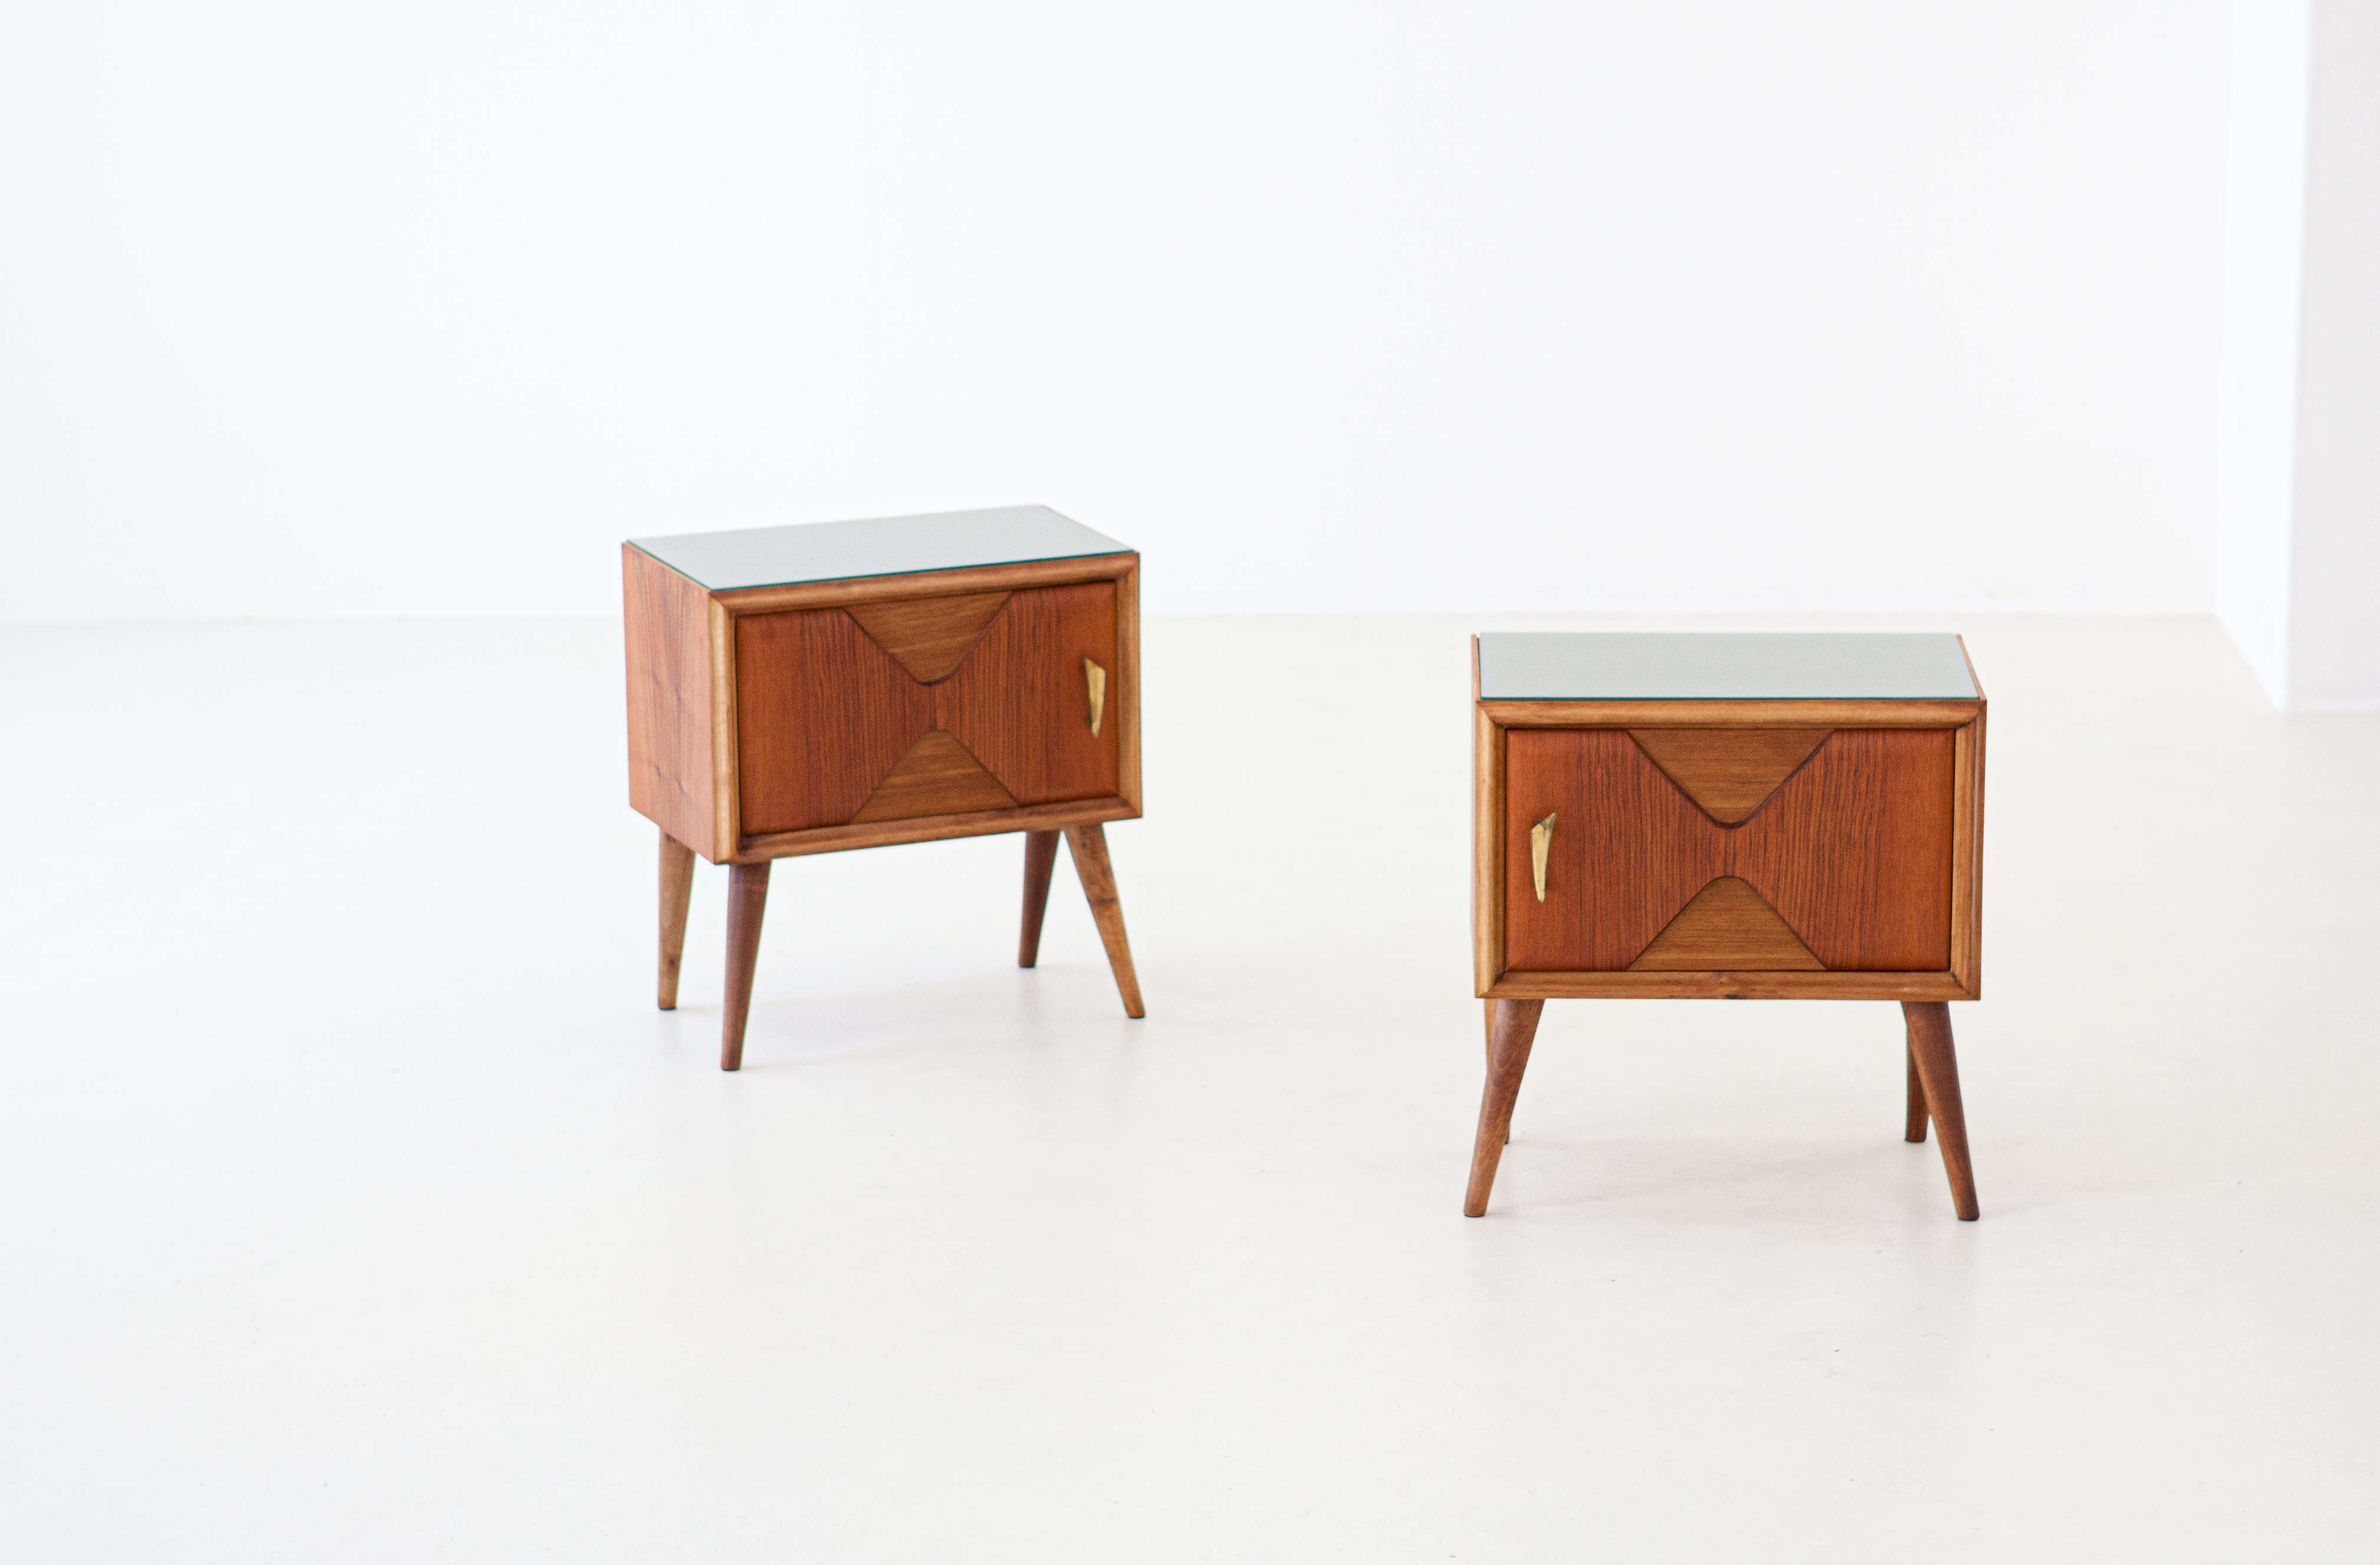 1950s-italian-exotic-wood-brass-glass-bedside-tables-4-BT81